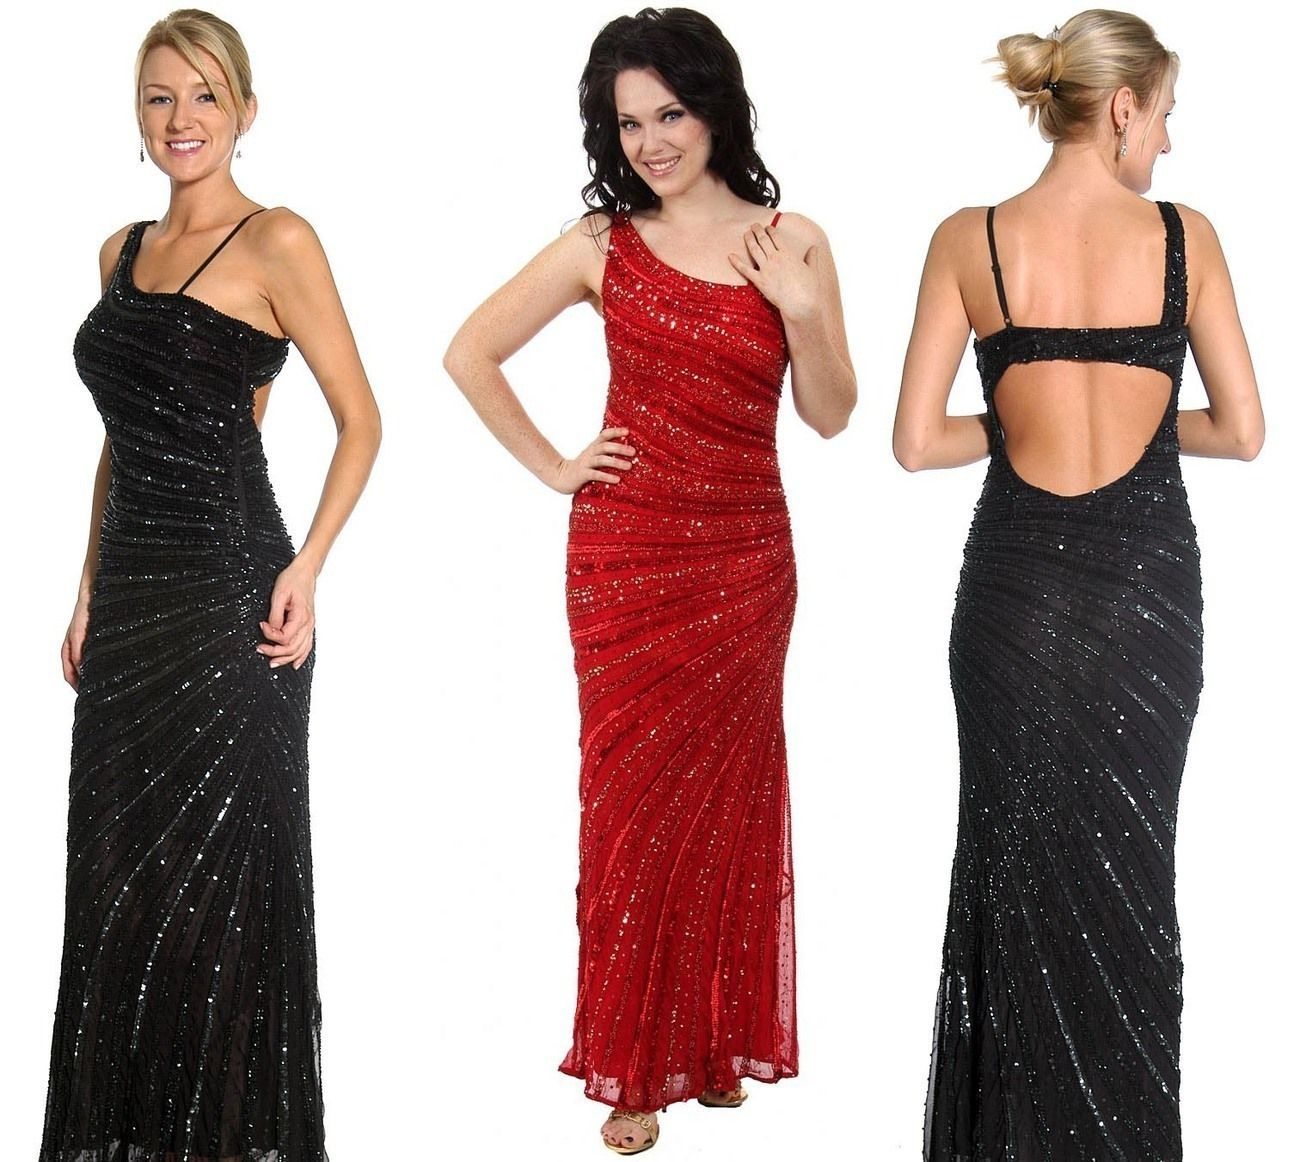 Non formal cocktail dresses